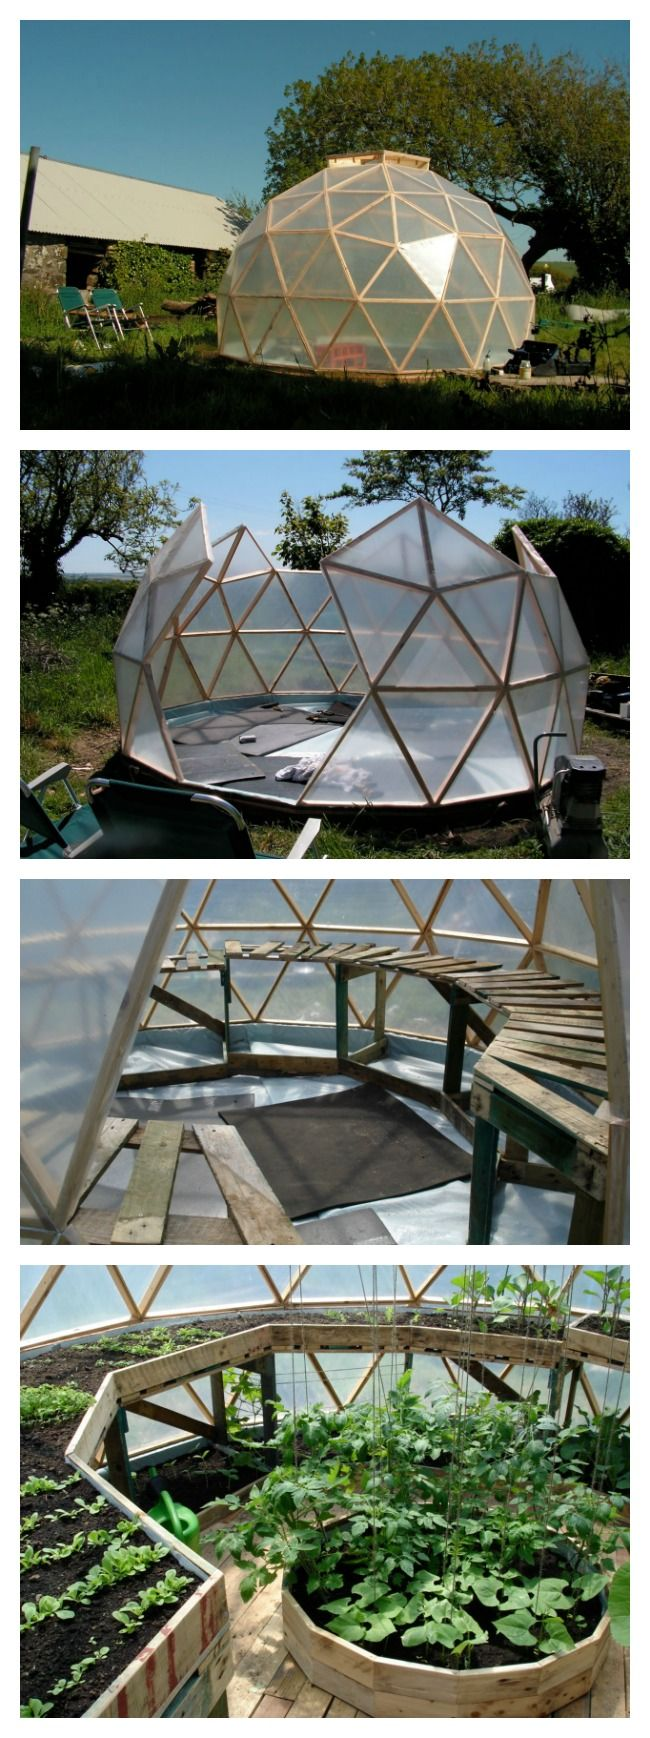 Best 25 dome greenhouse ideas that you will like on for Geodesic greenhouse plans free